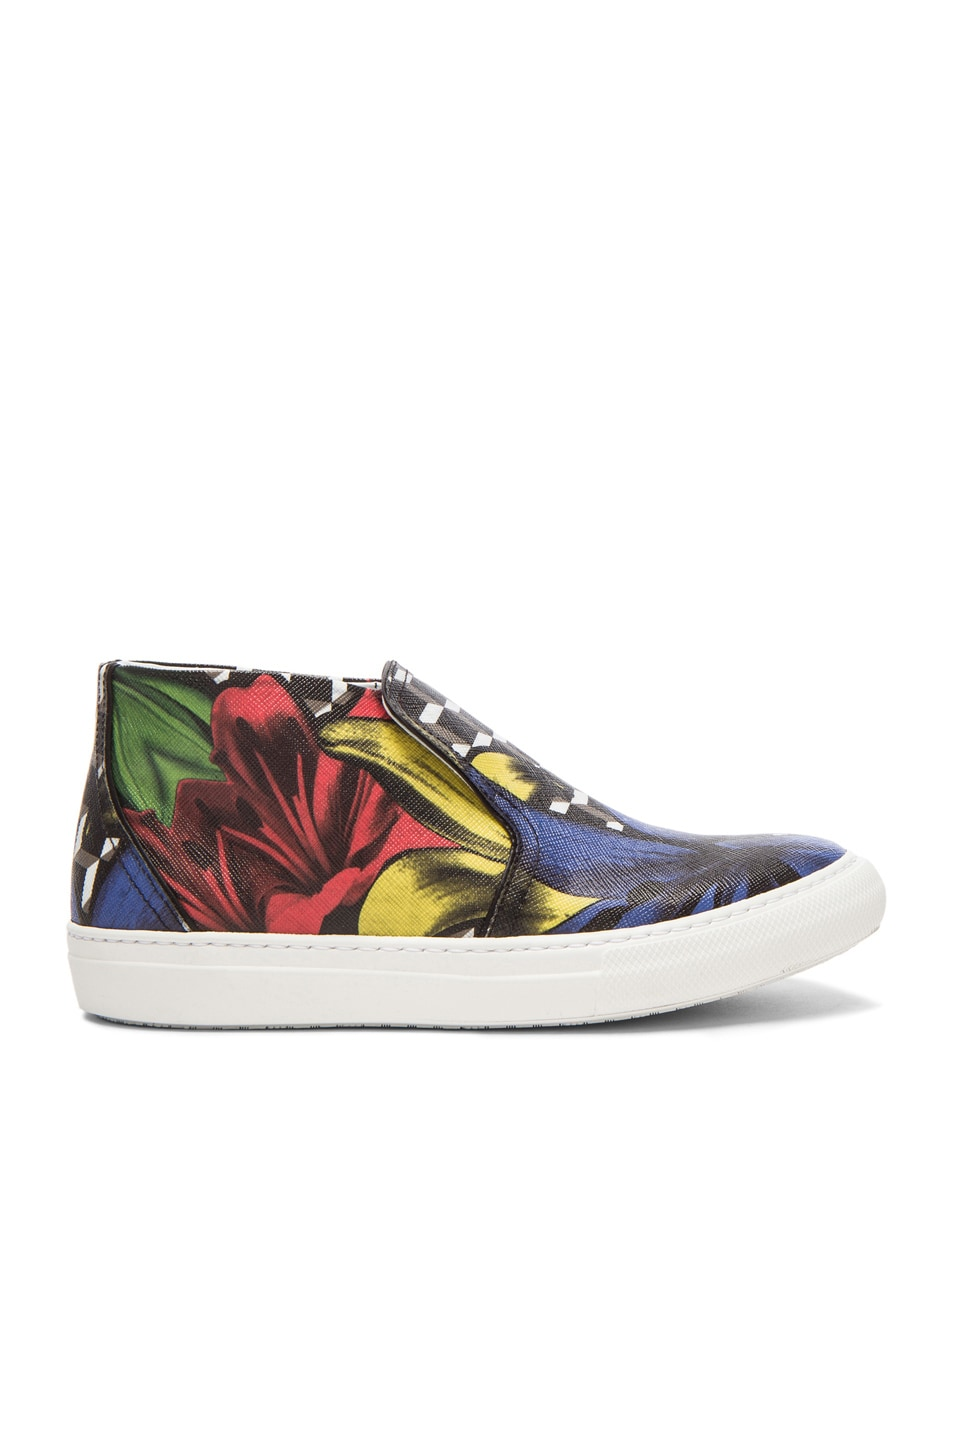 Image 1 of Pierre Hardy Coated Canvas Lily Cube Sneakers in Primary